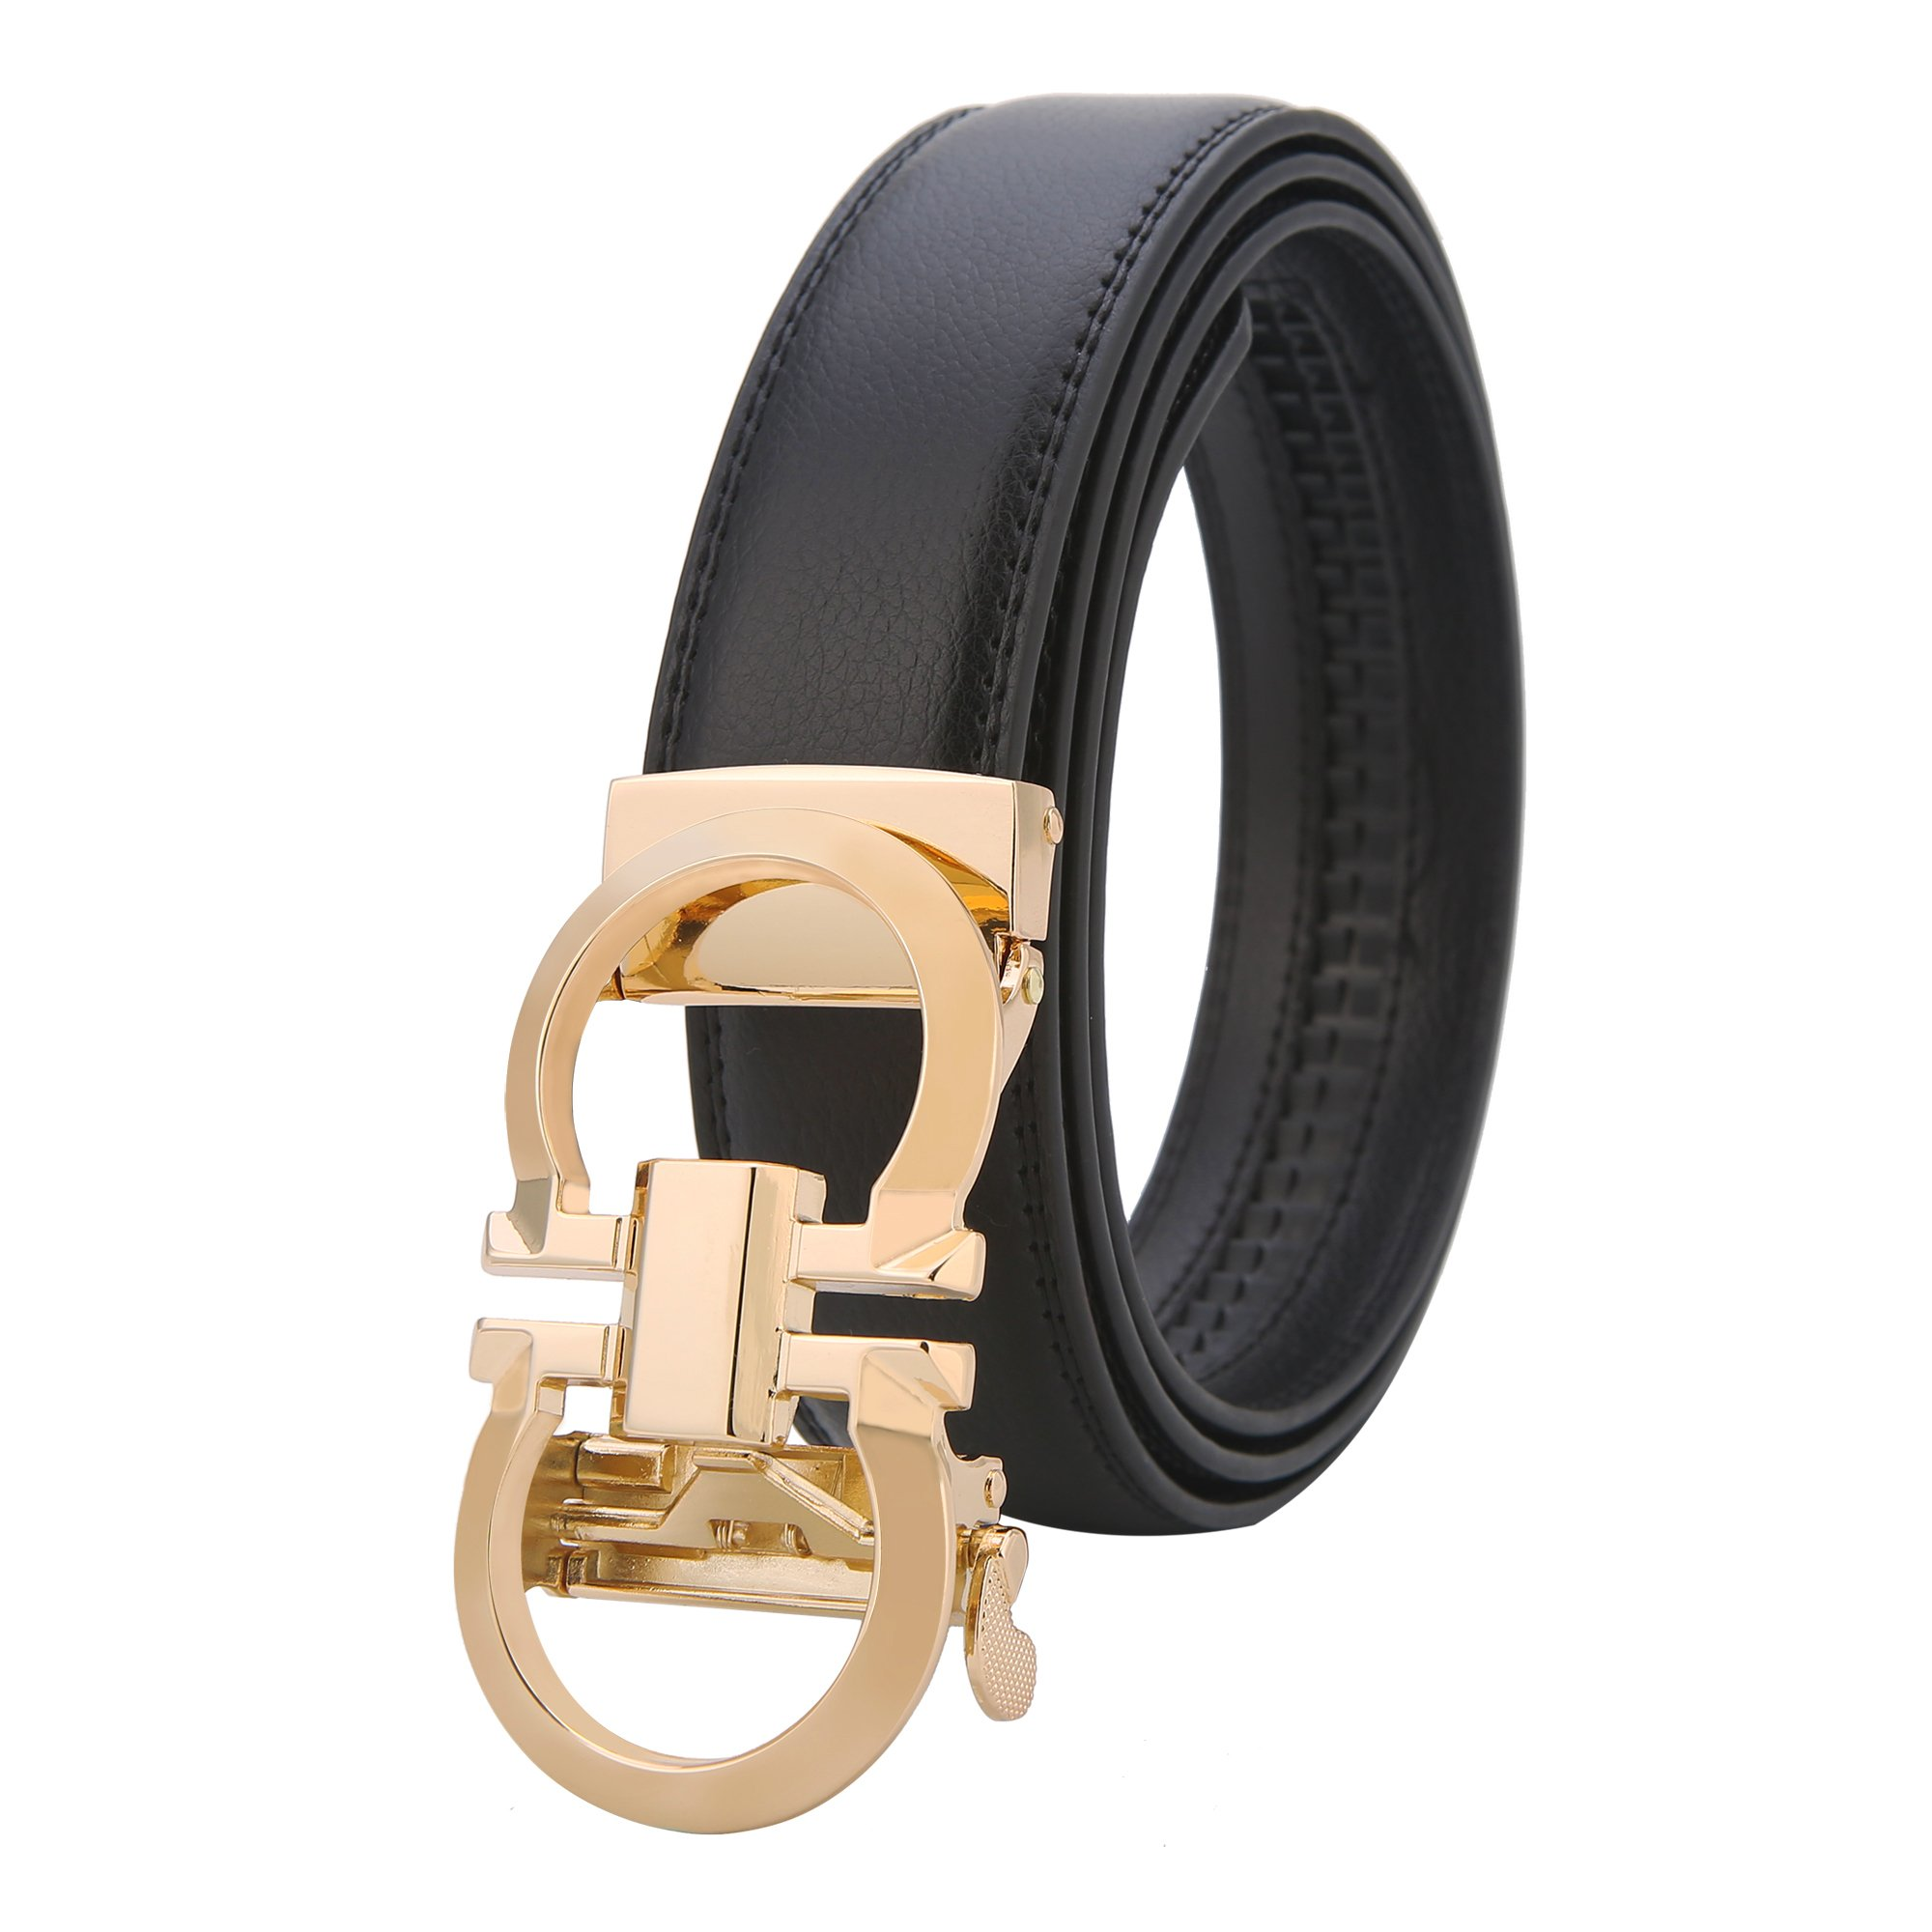 GO.LOVE Mens Genuine Leather Rachet Dress Belt Comfort Click on Gold Or Silver Buckle Wildth 1.38'' (GOLD, 27''-48'')